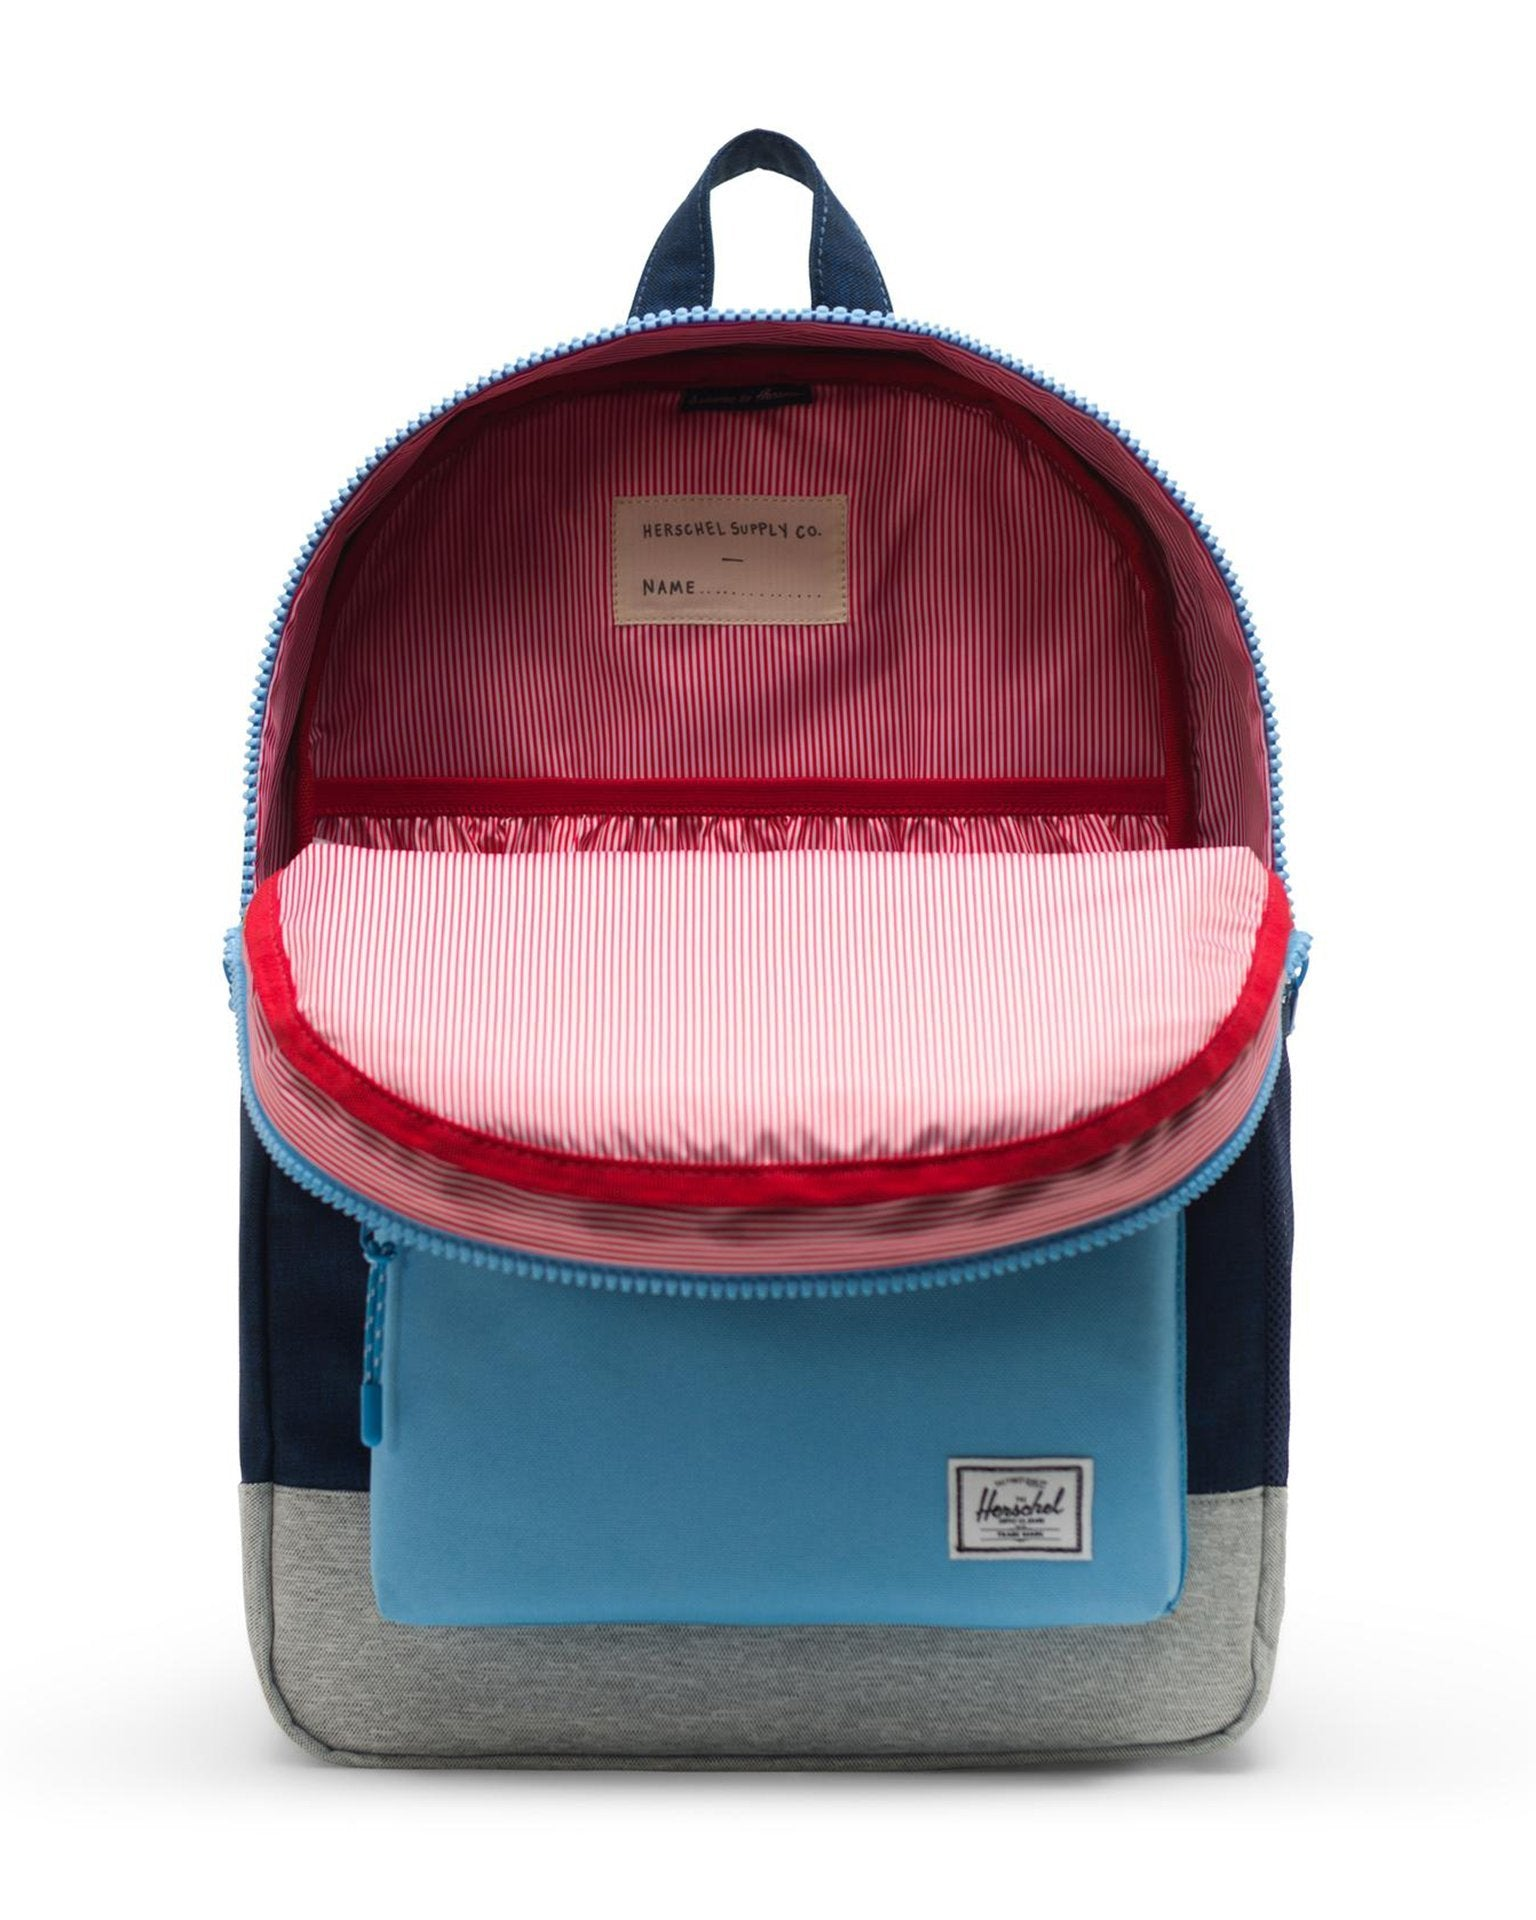 28b3c351b40 ... Little herschel supply co accessories youth heritage backpack xl in medieval  blue crosshatch ...